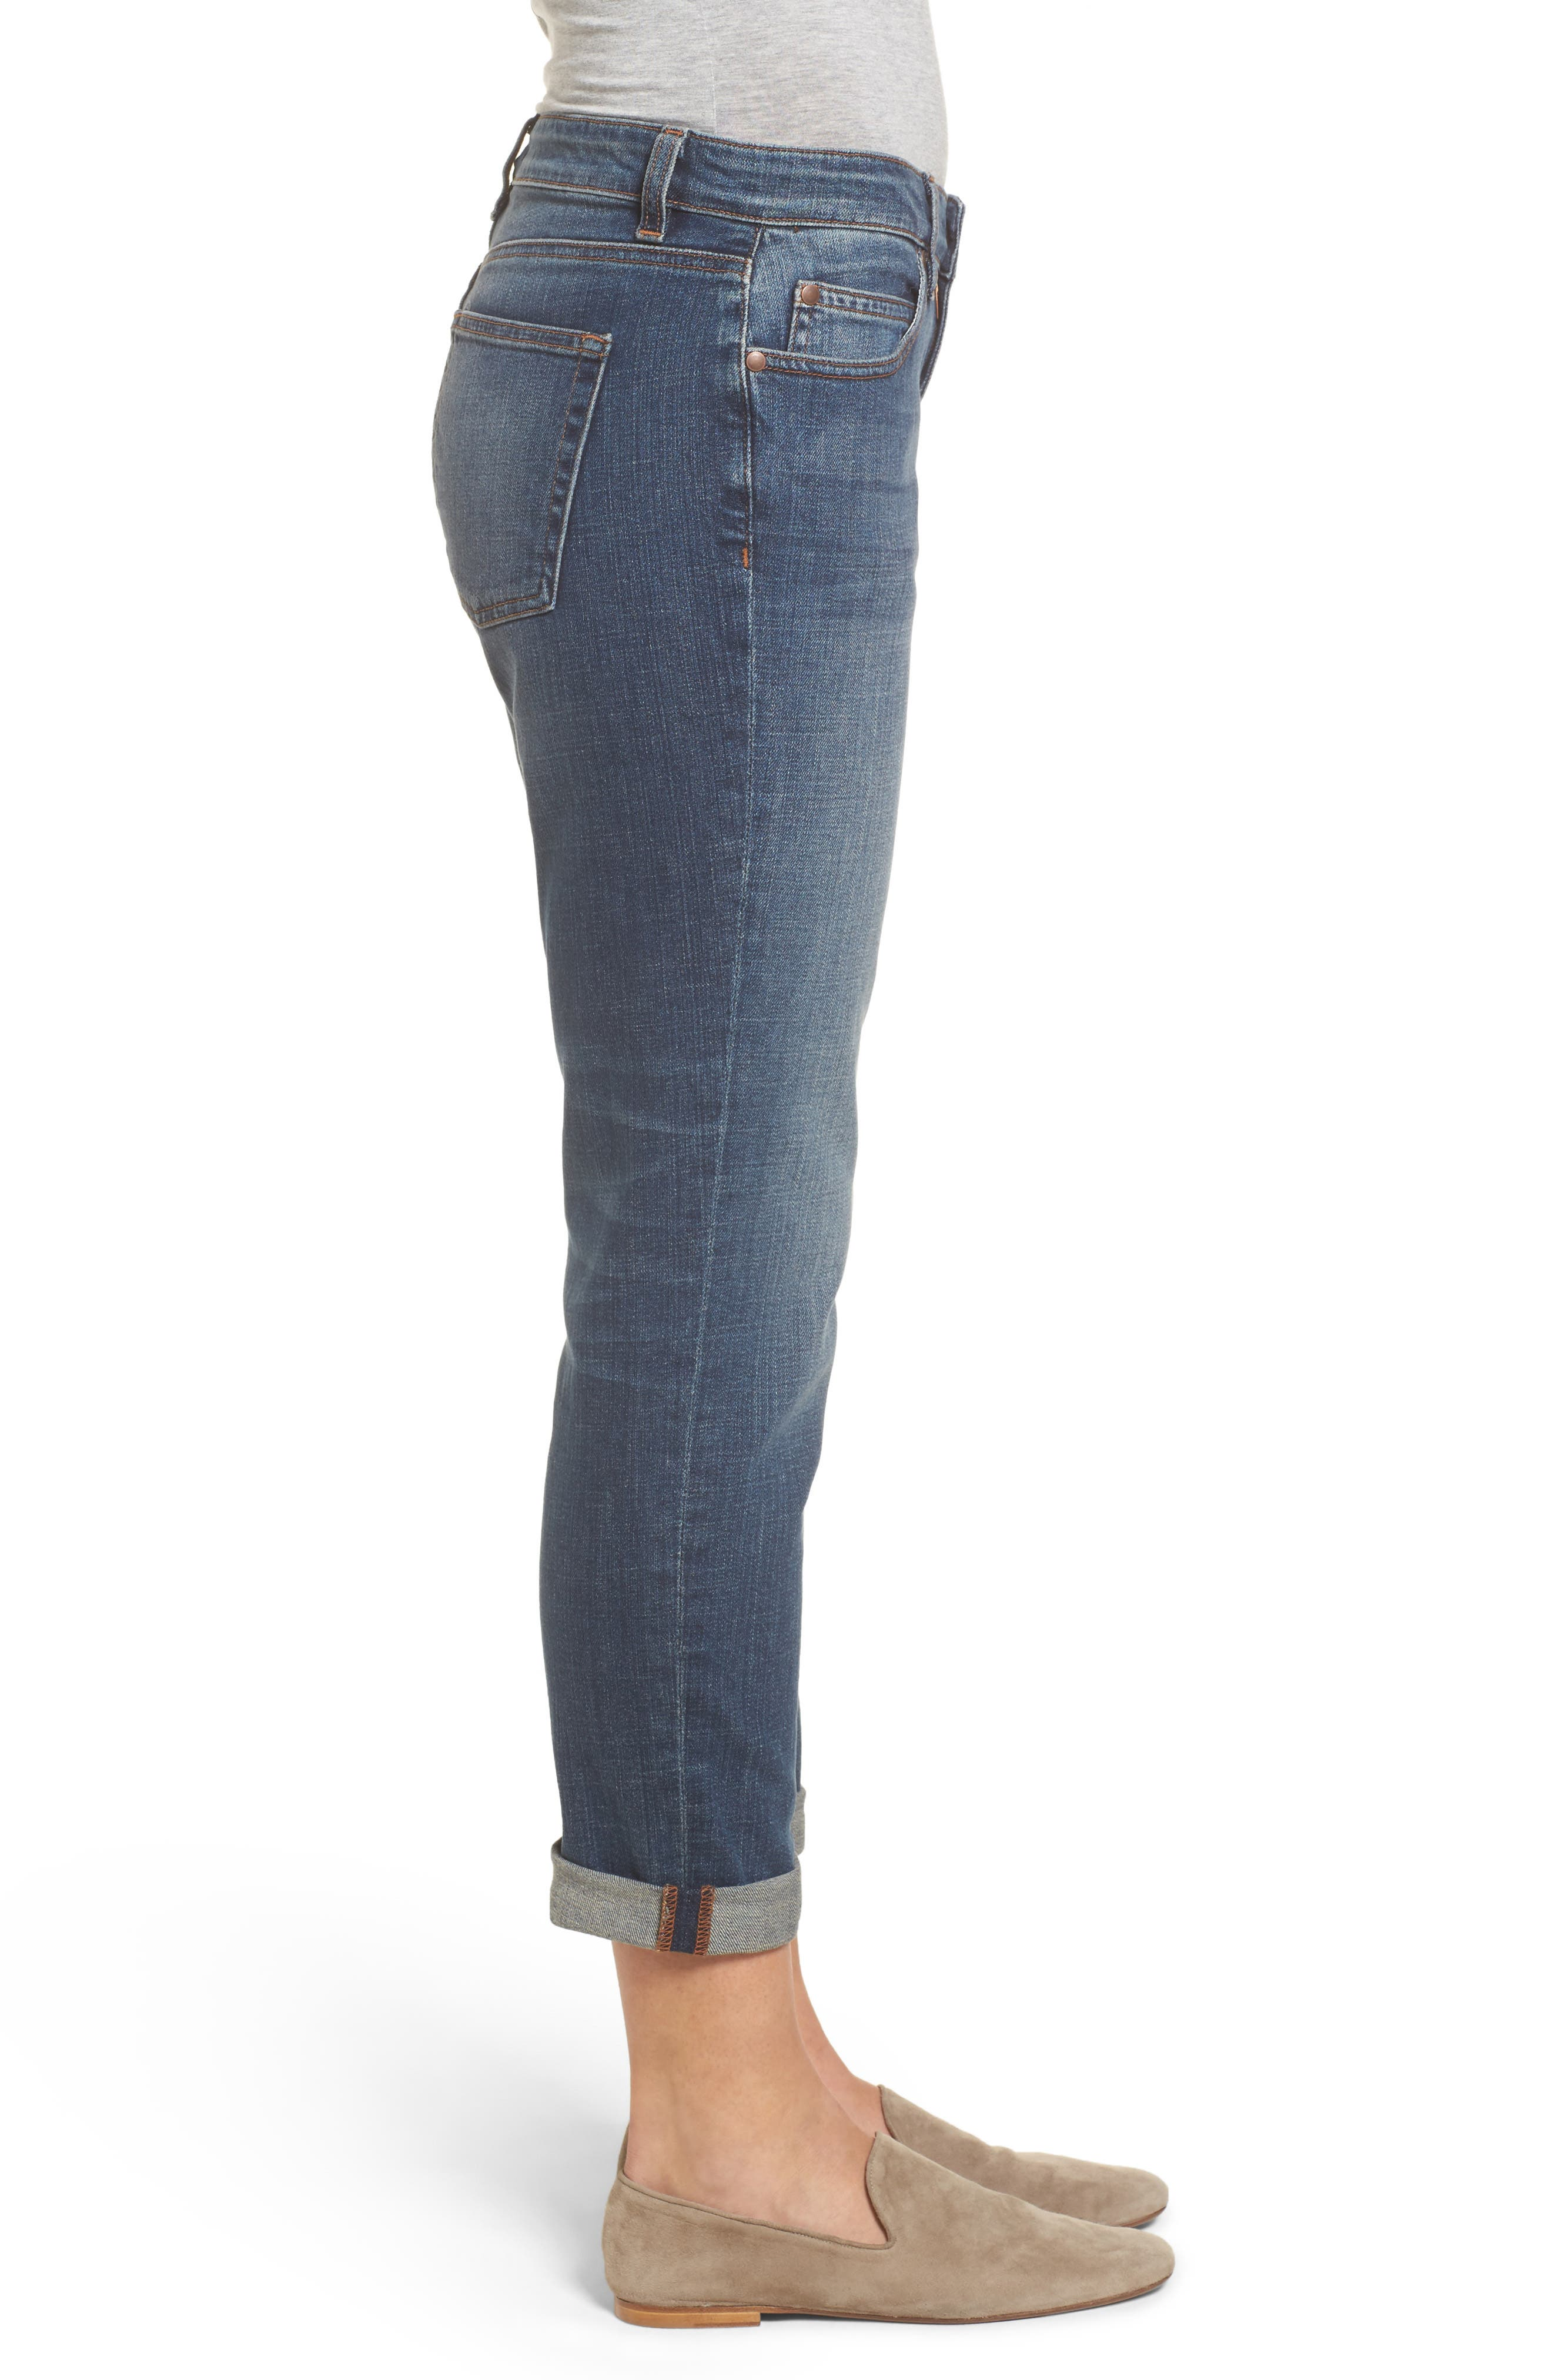 Alternate Image 3  - Eileen Fisher Organic Cotton Boyfriend Jeans (Online Only) (Regular & Petite)